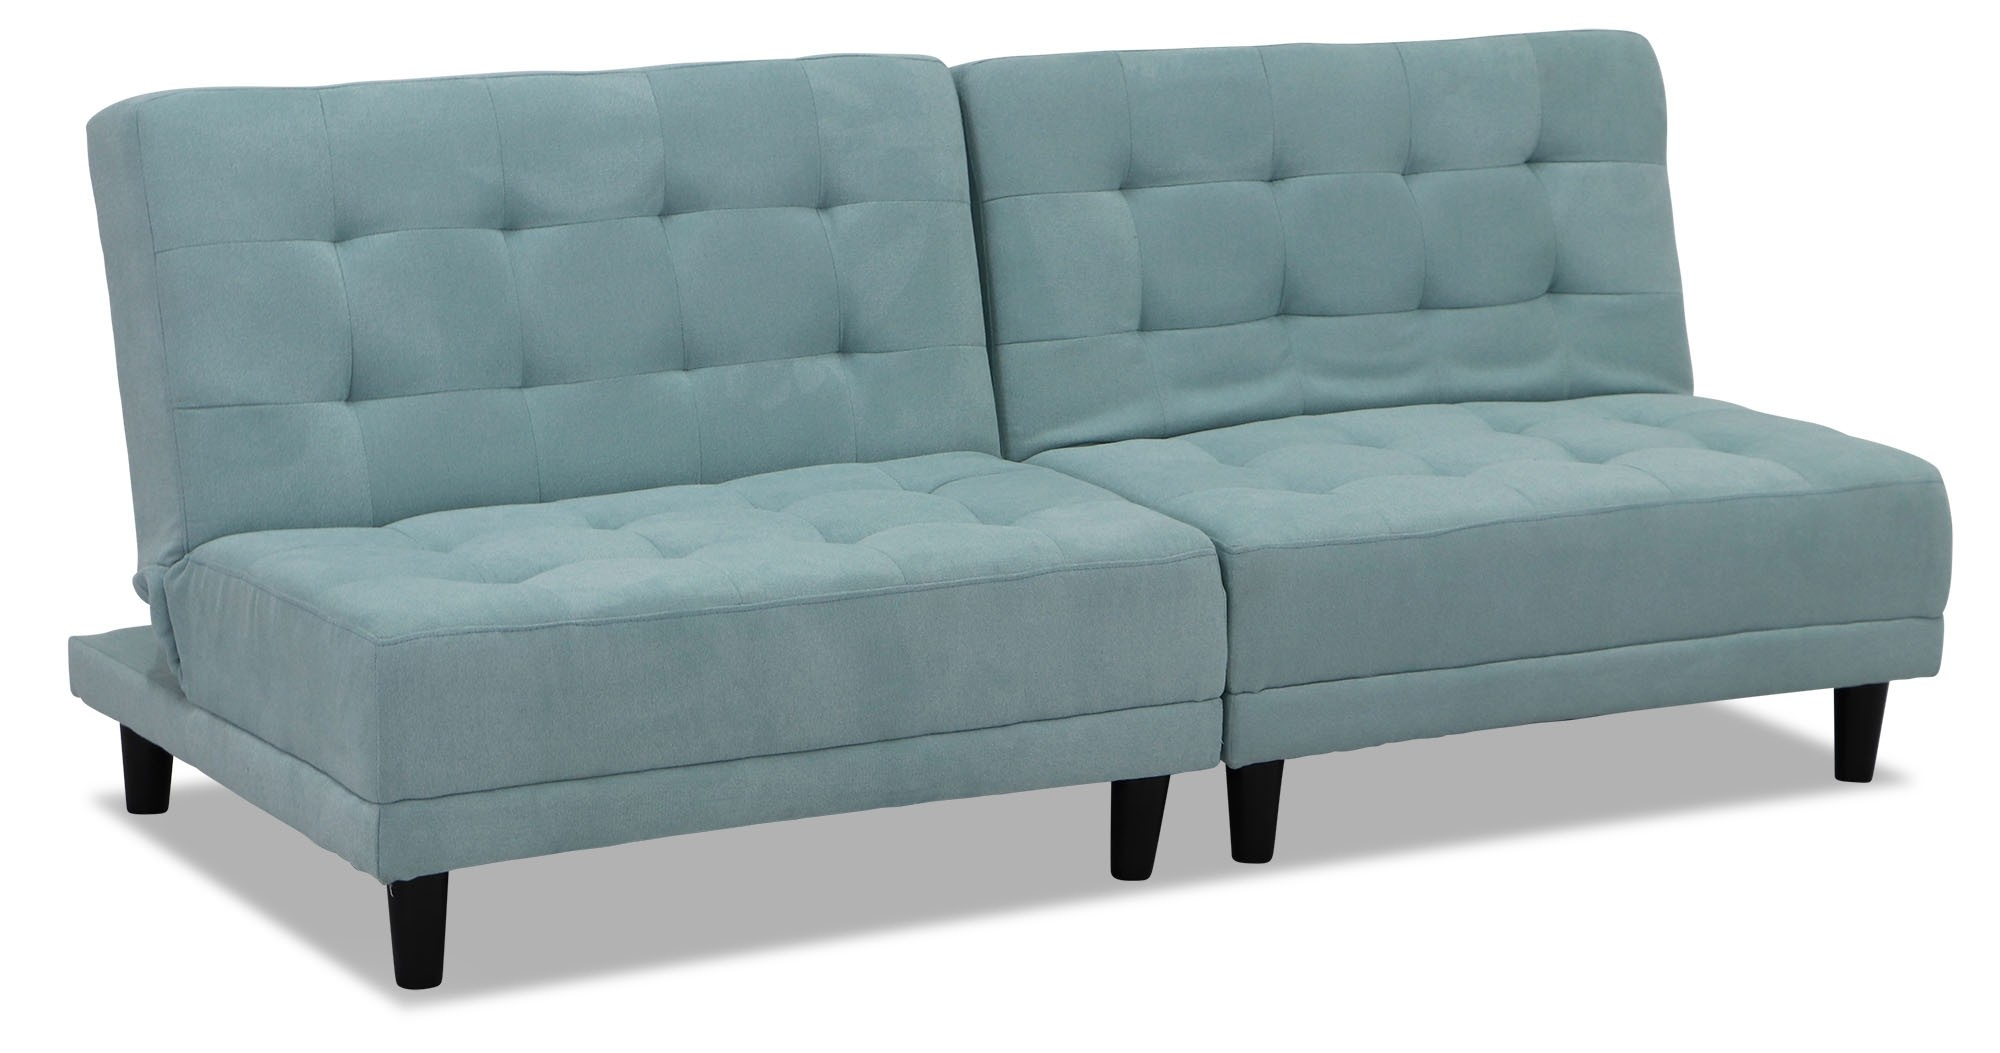 sofa bed for sale singapore sleeper sectional chaise claspi pale turquoise furniture and home décor